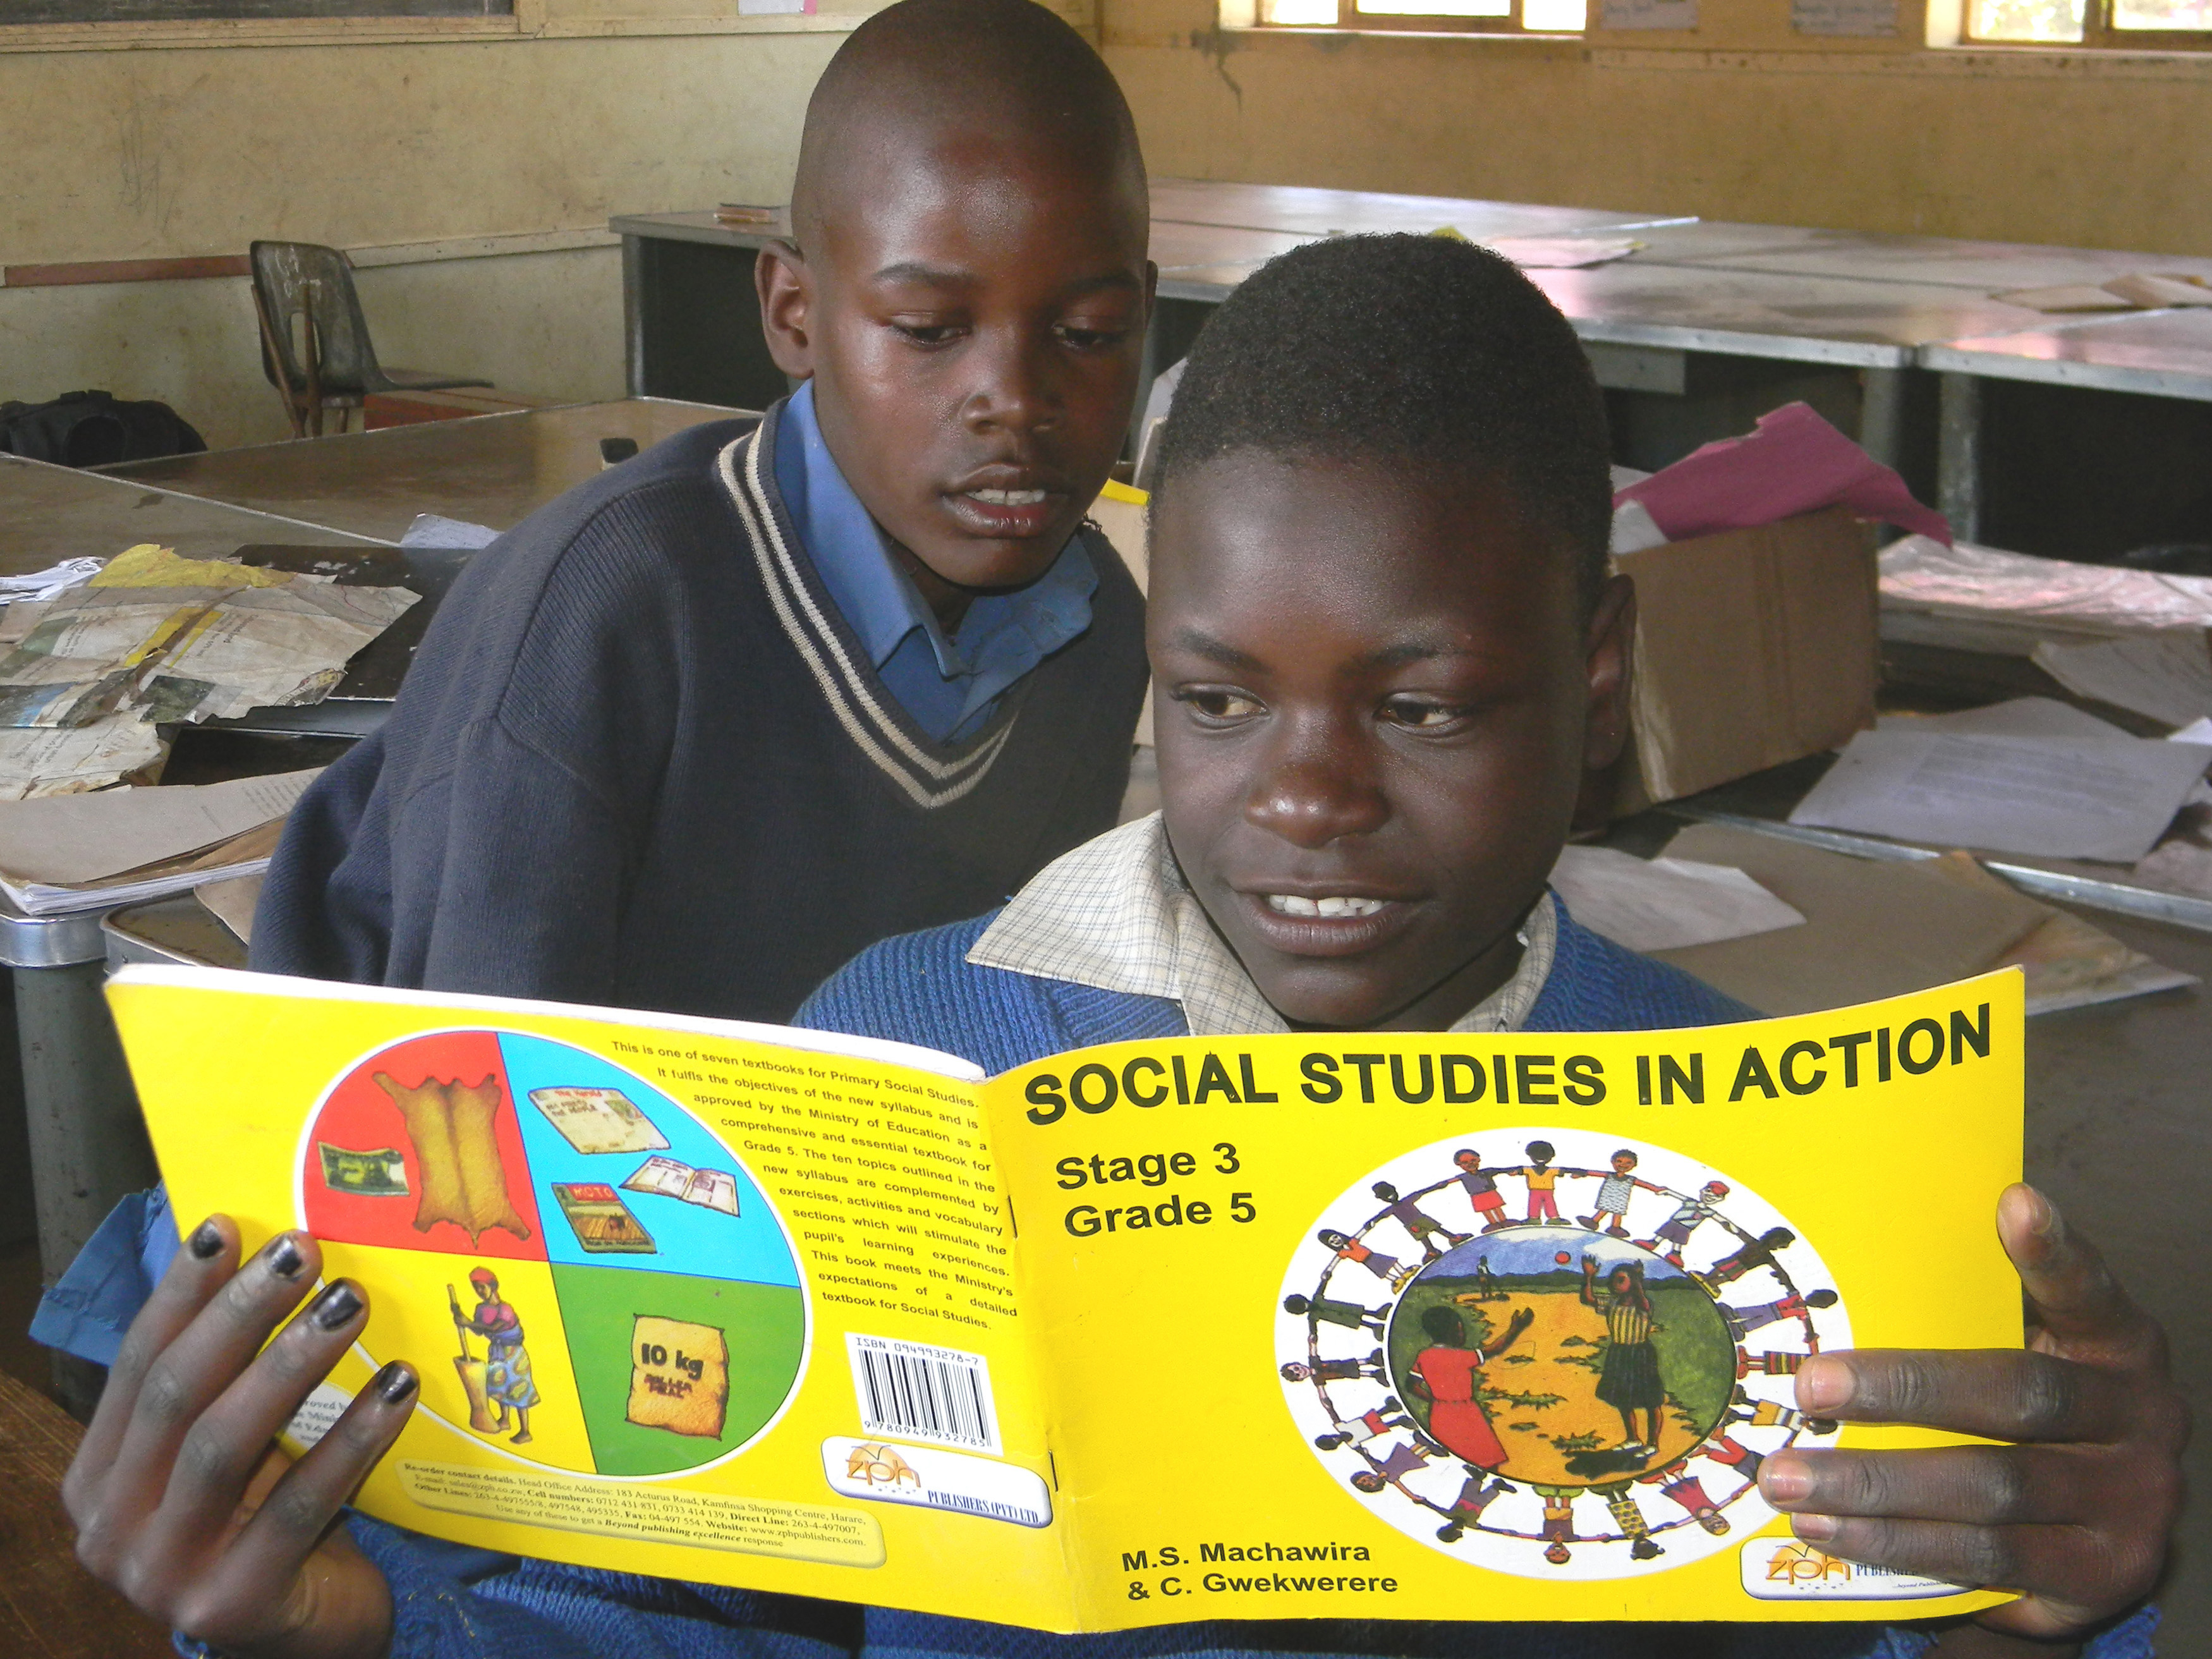 Harare, Zimbabwe, October 18 2015. Primary school children reading a Social Studies book inside a classroom. Social studies is one of the important subjects at primary school.